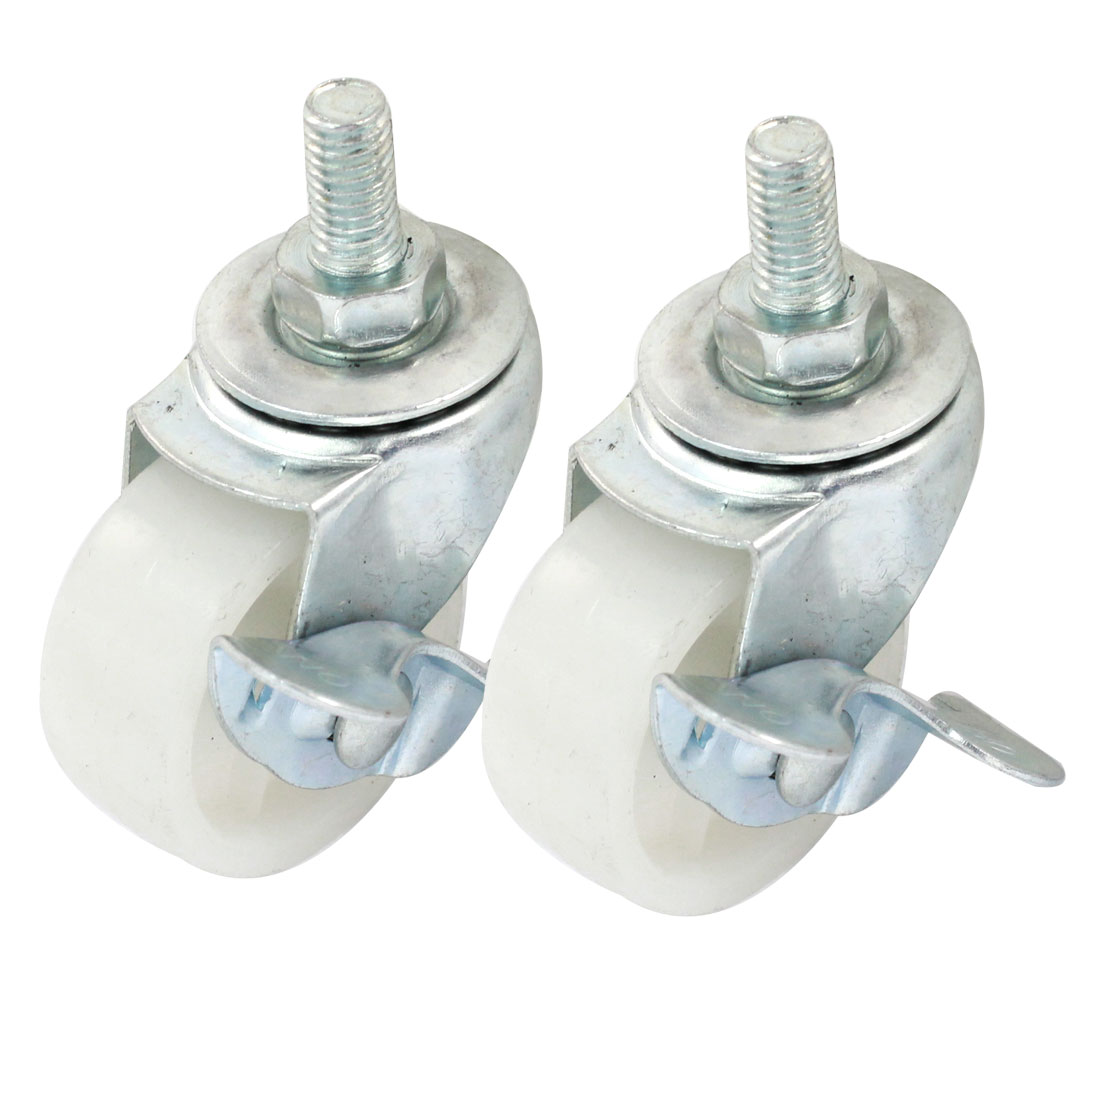 "Shopping Cart 8mm Thread Stem 1.5"" Rotary Round Wheel Swivel Brake Caster 2pcs"